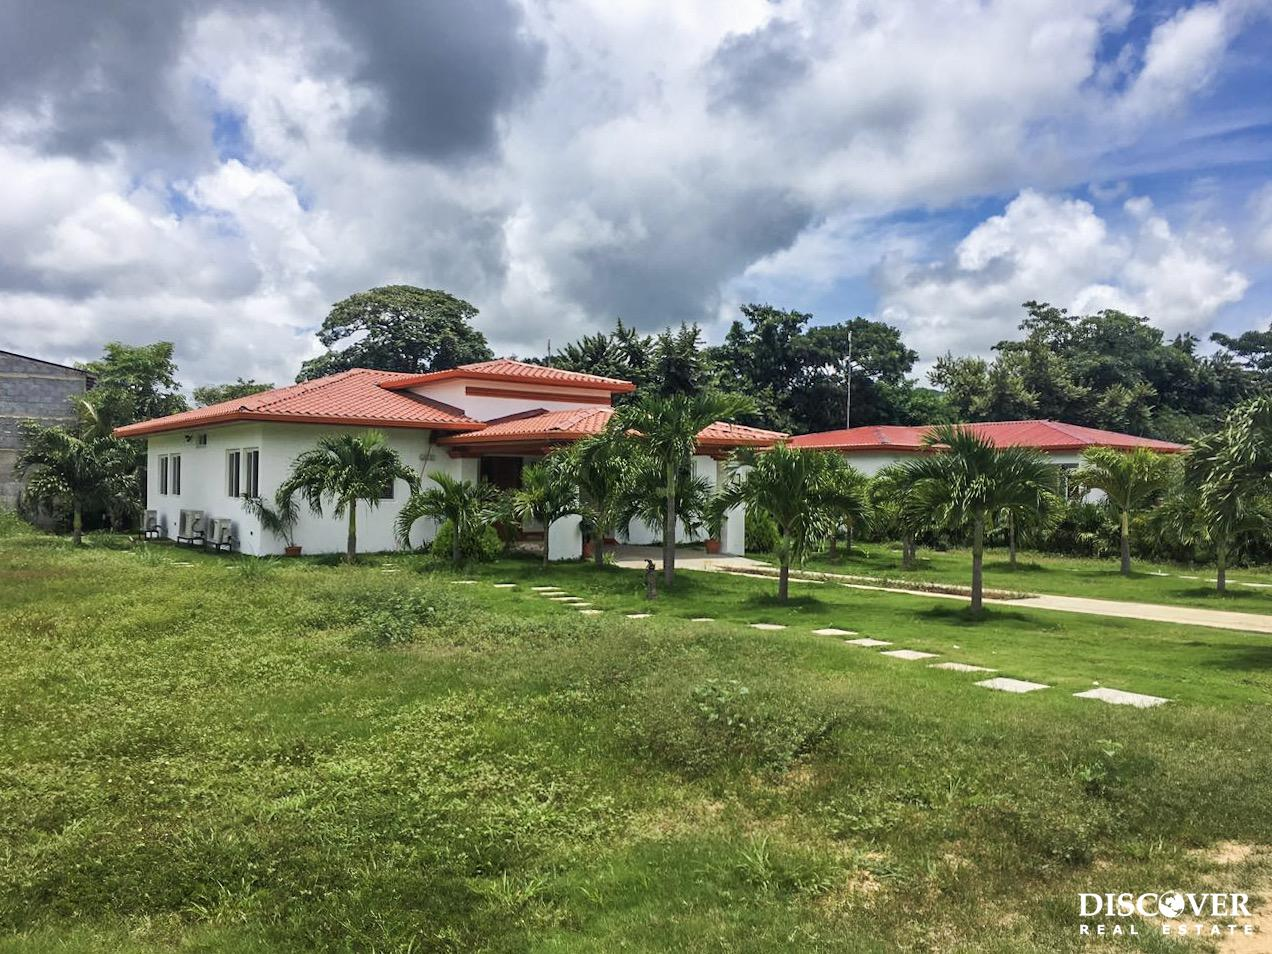 Neighboring Houses for Sale on a Large Lot in Las Delicias